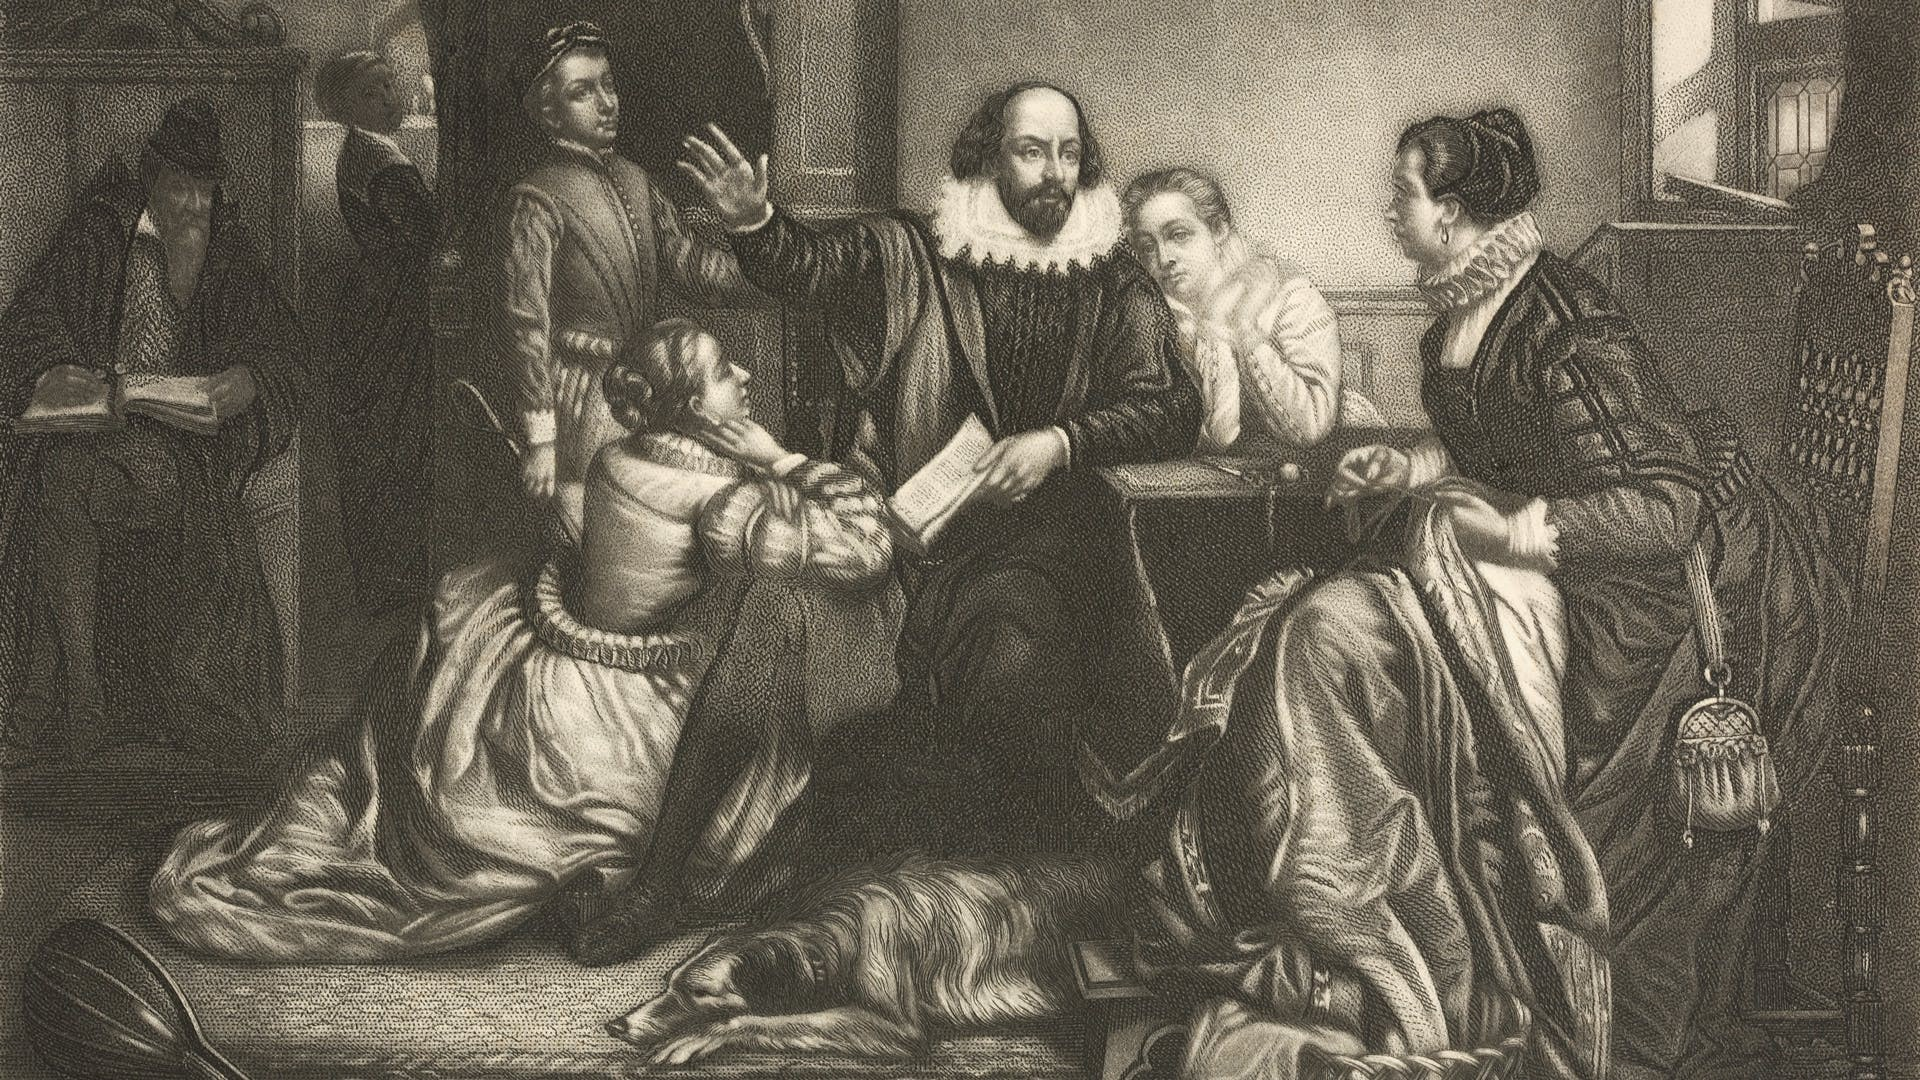 William Shakespeare reciting a play for a group of women.